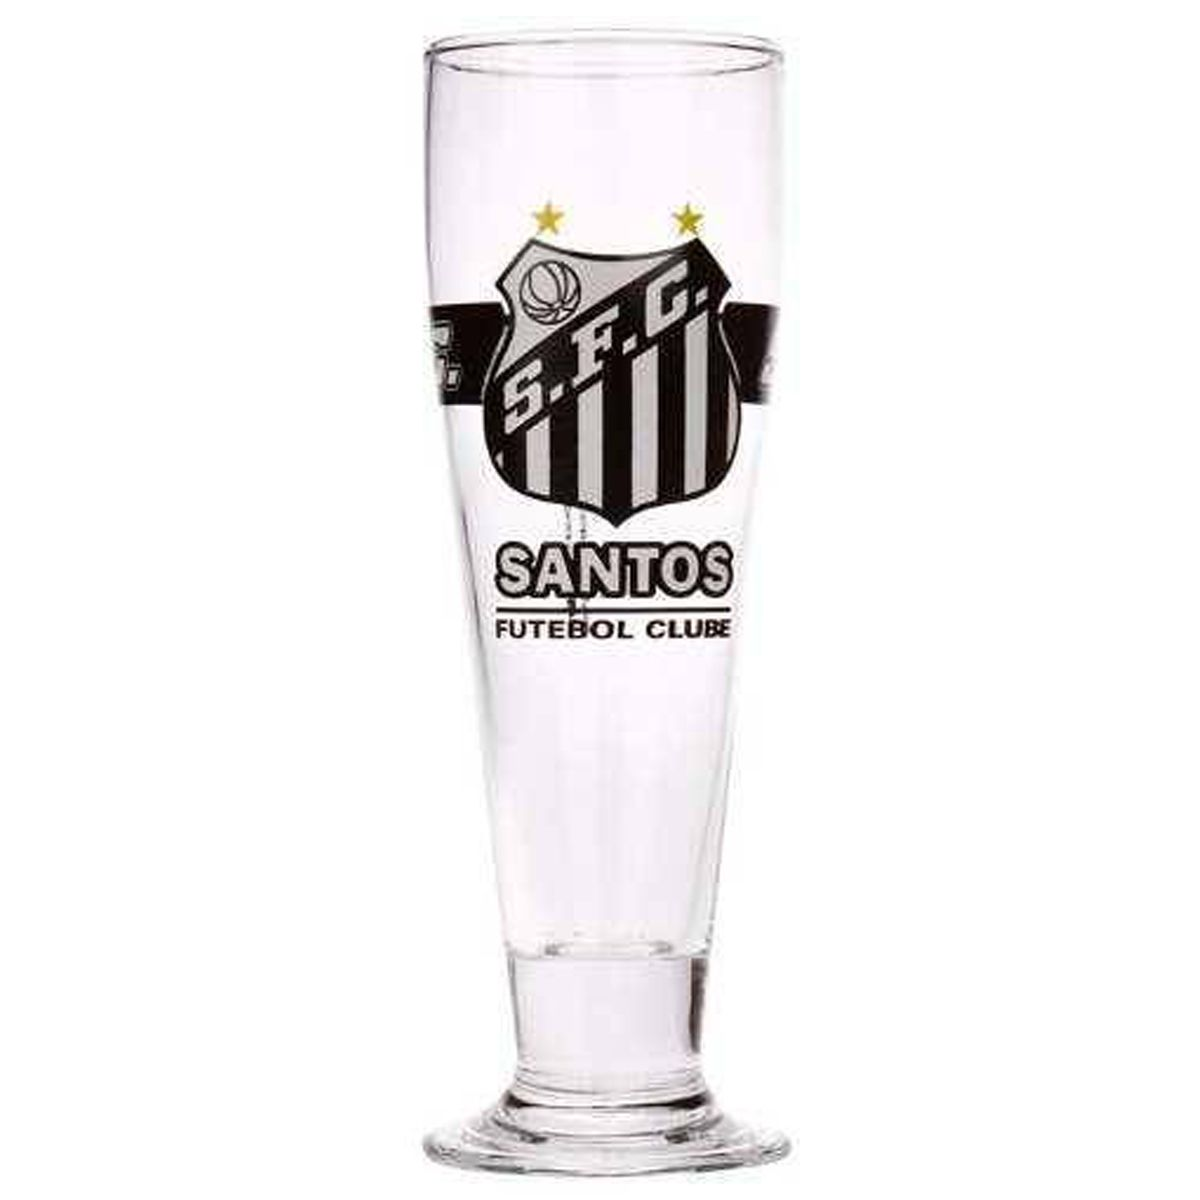 Copo Chopp do Santos 300 ml na Lata Cofre